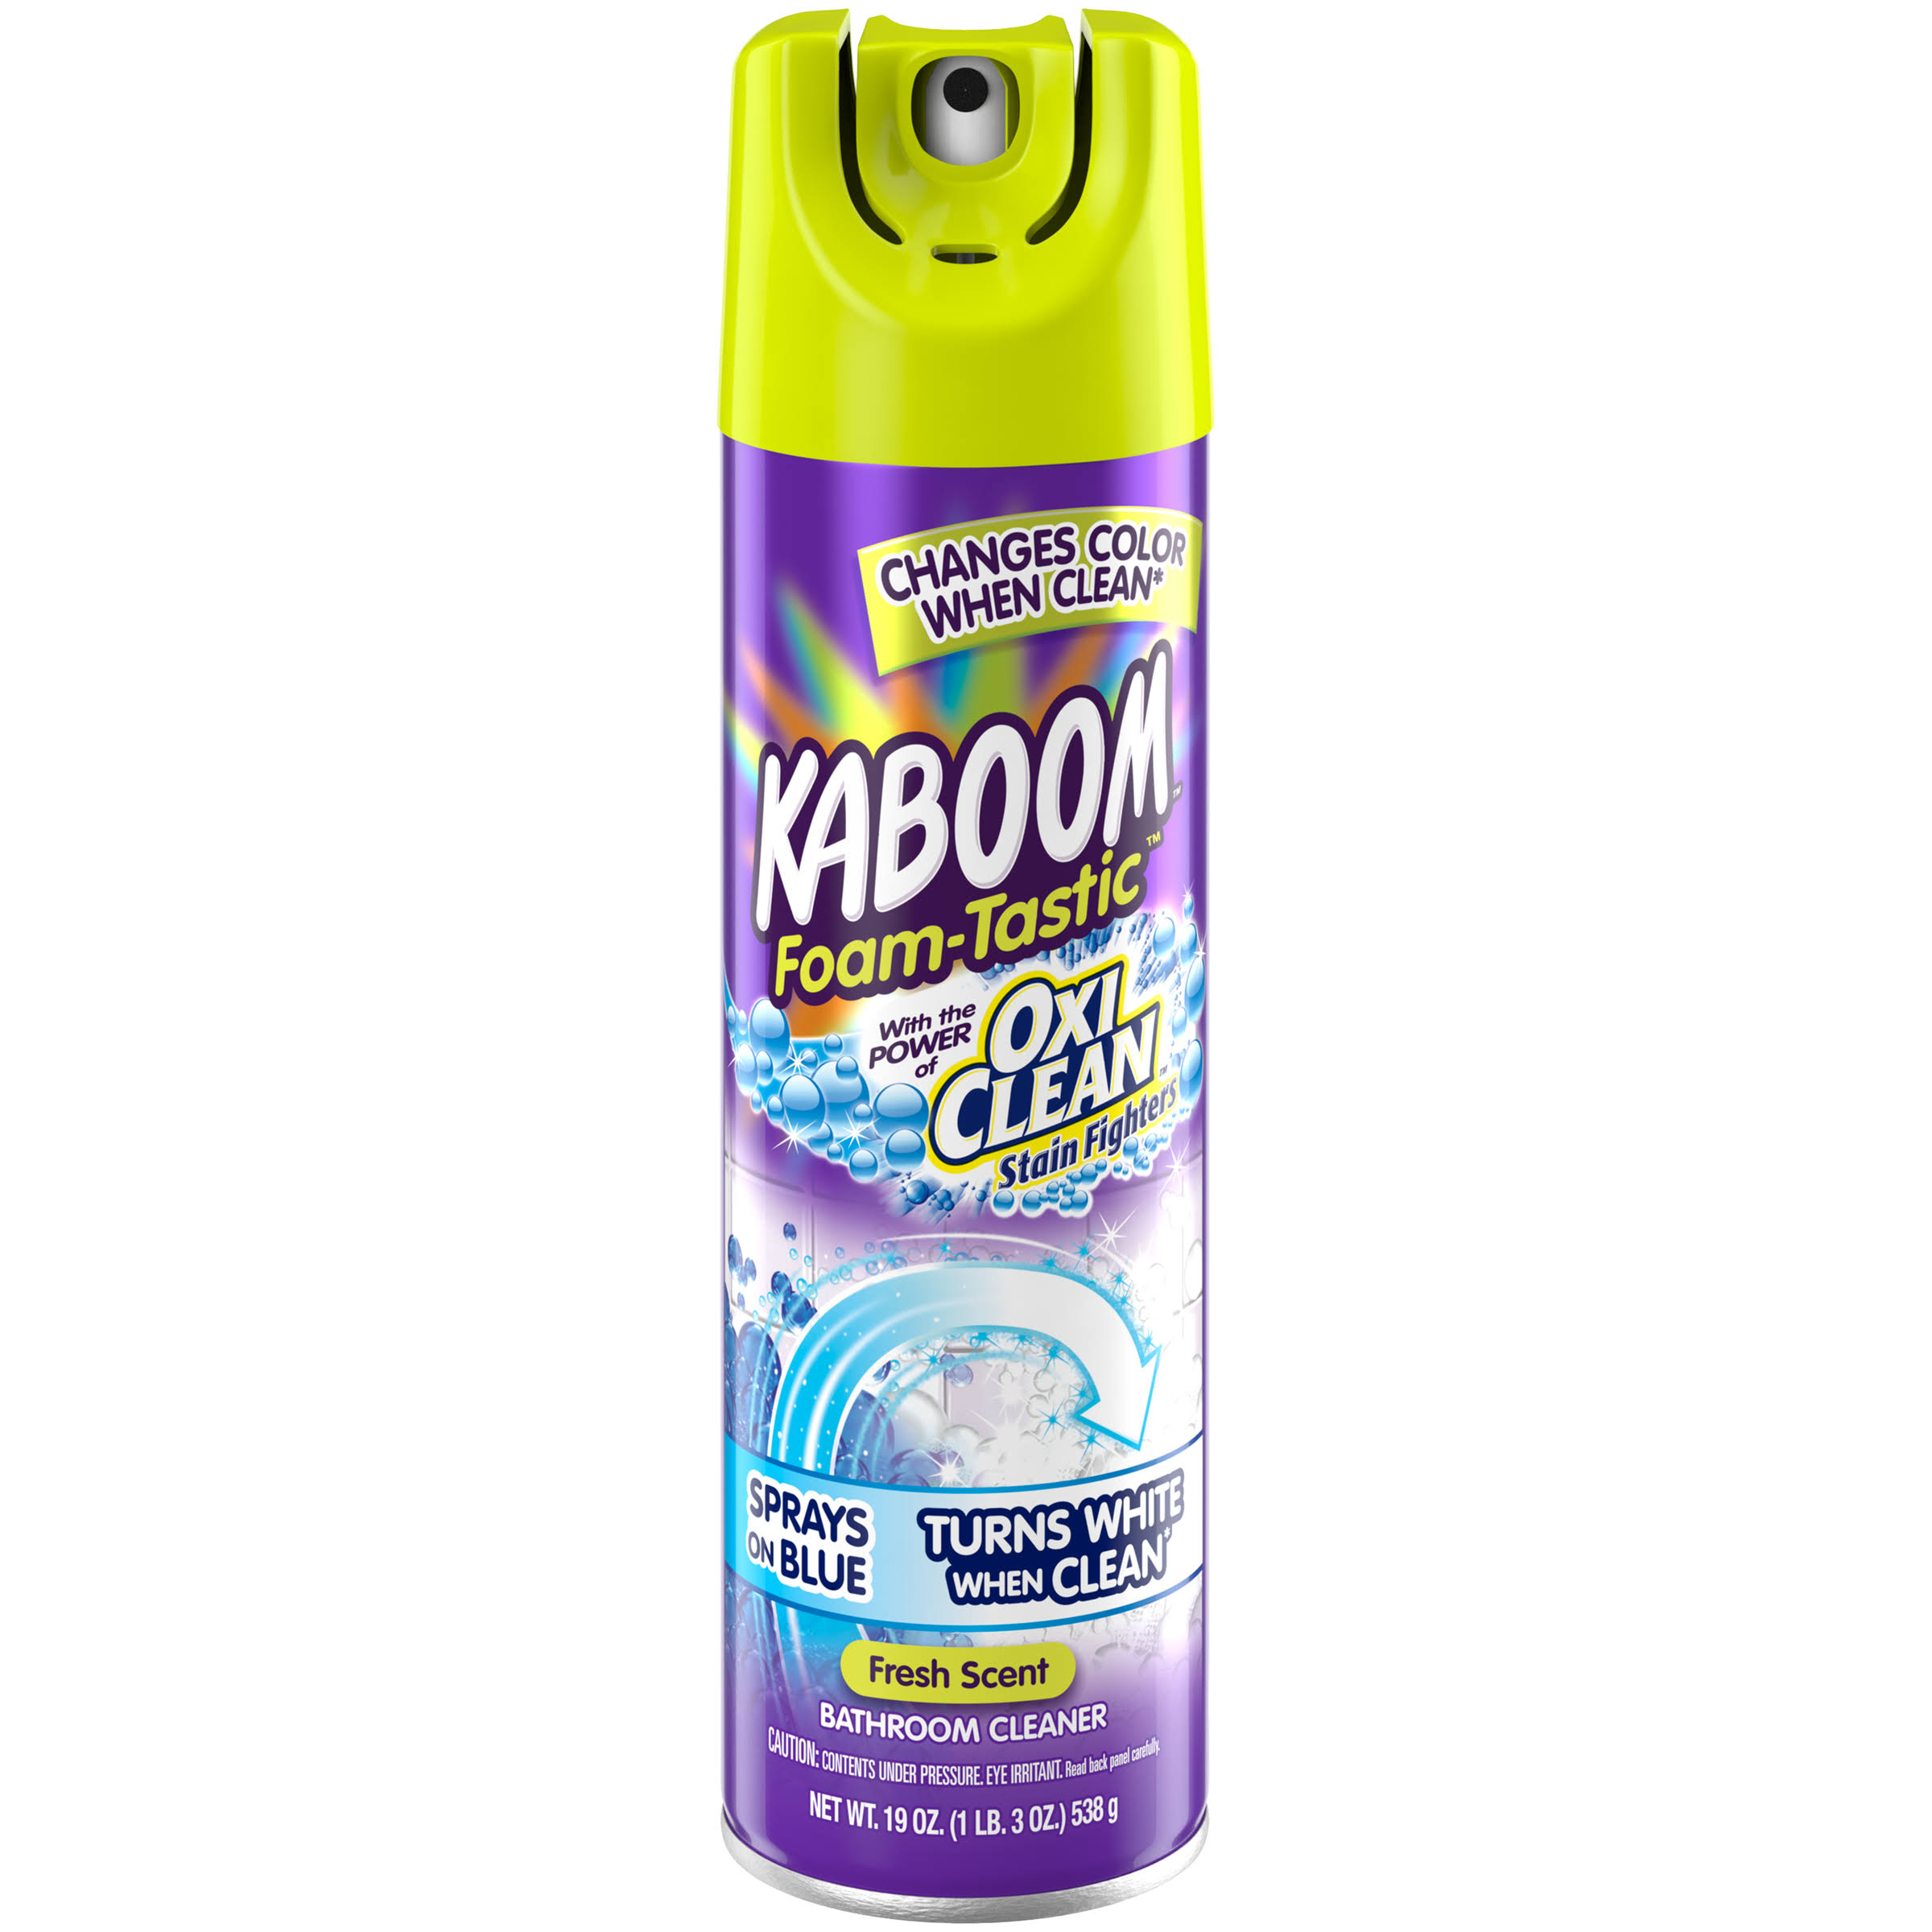 Kaboom Foam Tastic Color Changing Bathroom Cleaner - 19oz, Fresh Scent